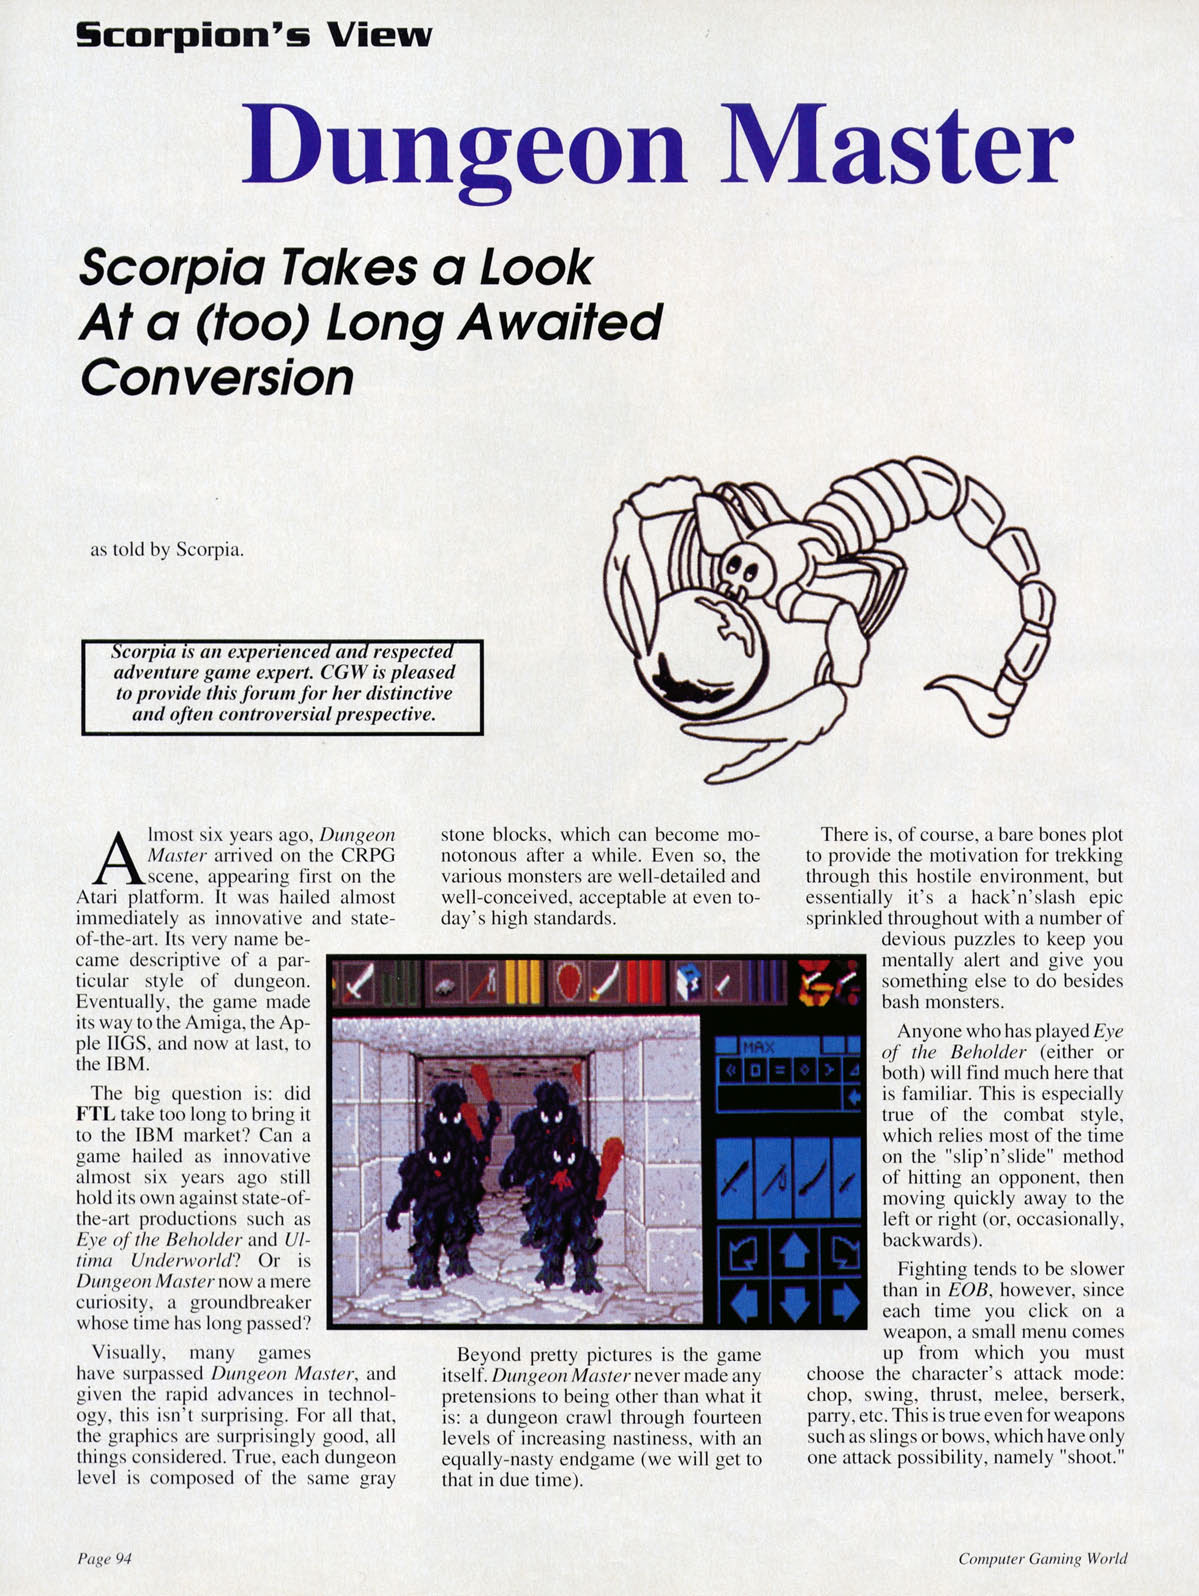 Dungeon Master for PC Review published in American magazine 'Computer Gaming World', Issue #100 November 1992, Page 94